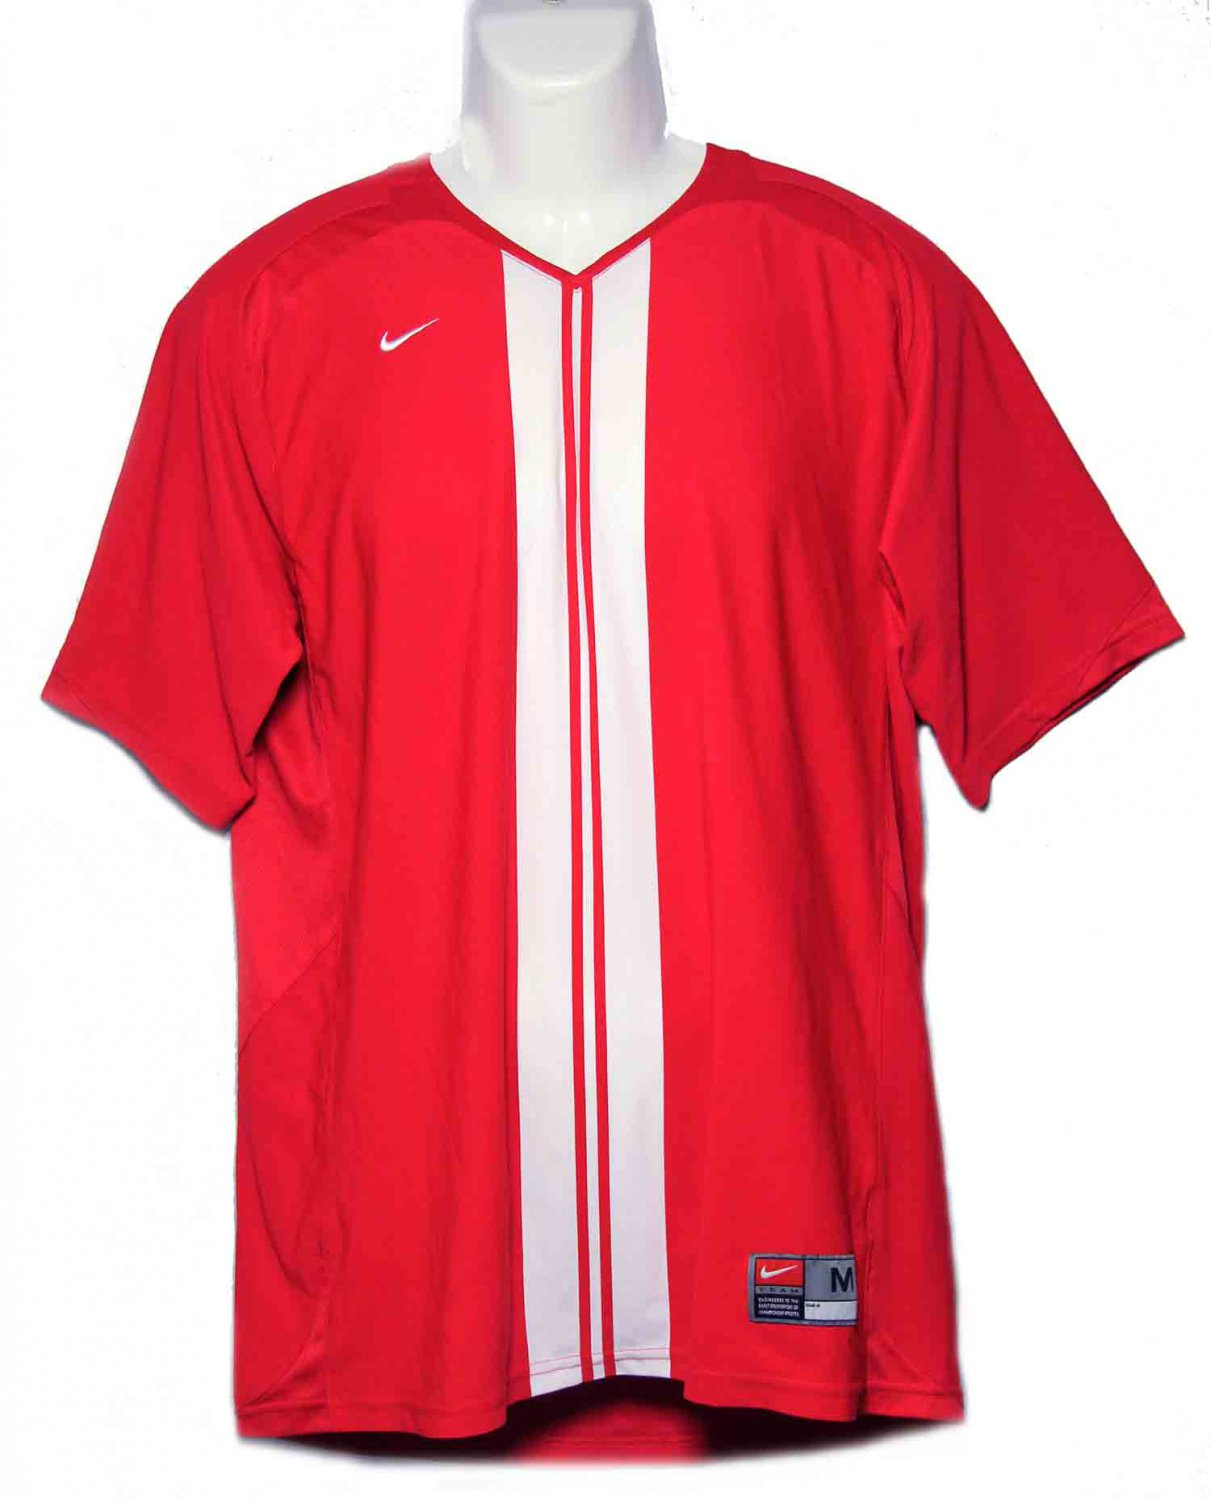 Men's Nike Dri-Fit Athletic Shirt Red White V-Neck Size M